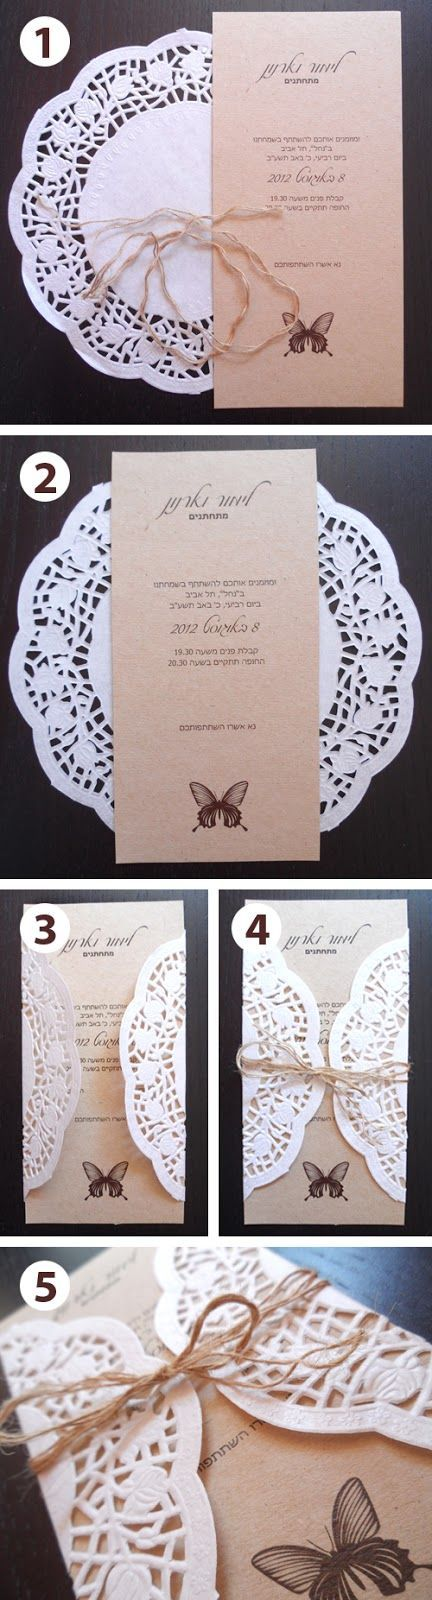 17 Best ideas about Diy Invitations on Pinterest Invitation